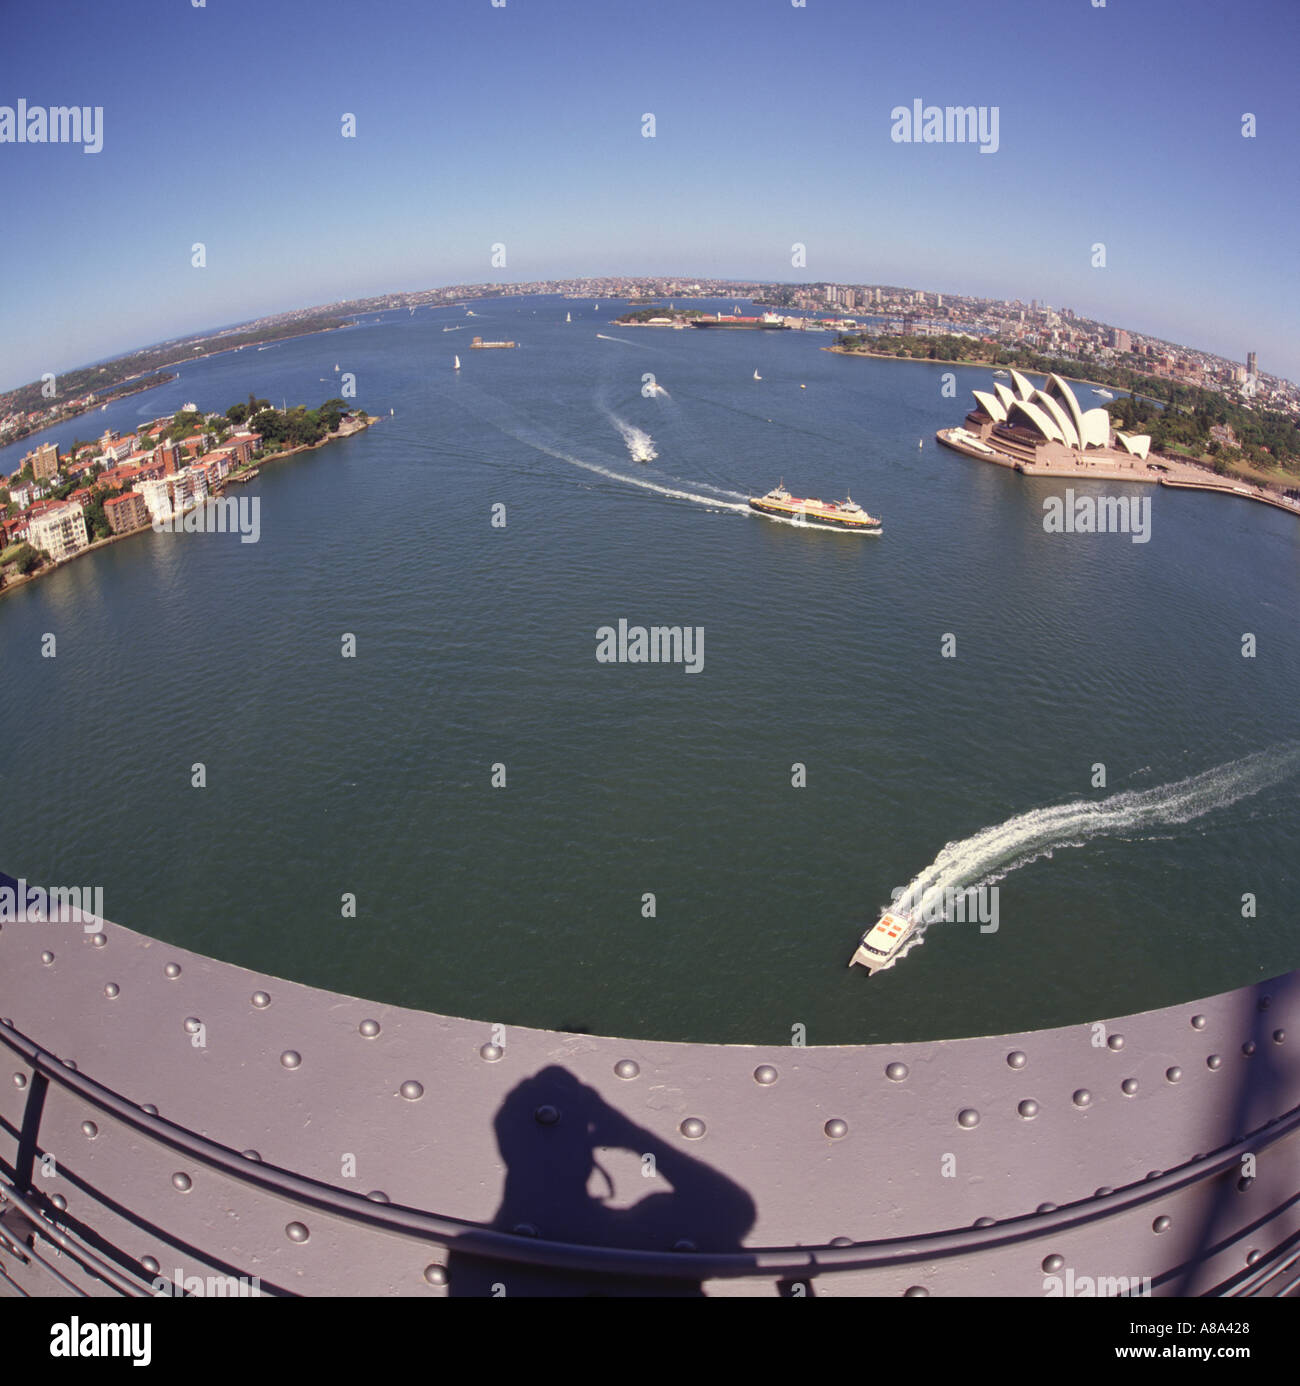 View over Sydney harbour Port Jackson with Fort Denison island from top of iron girder framework of the Harbour Bridge Australia - Stock Image